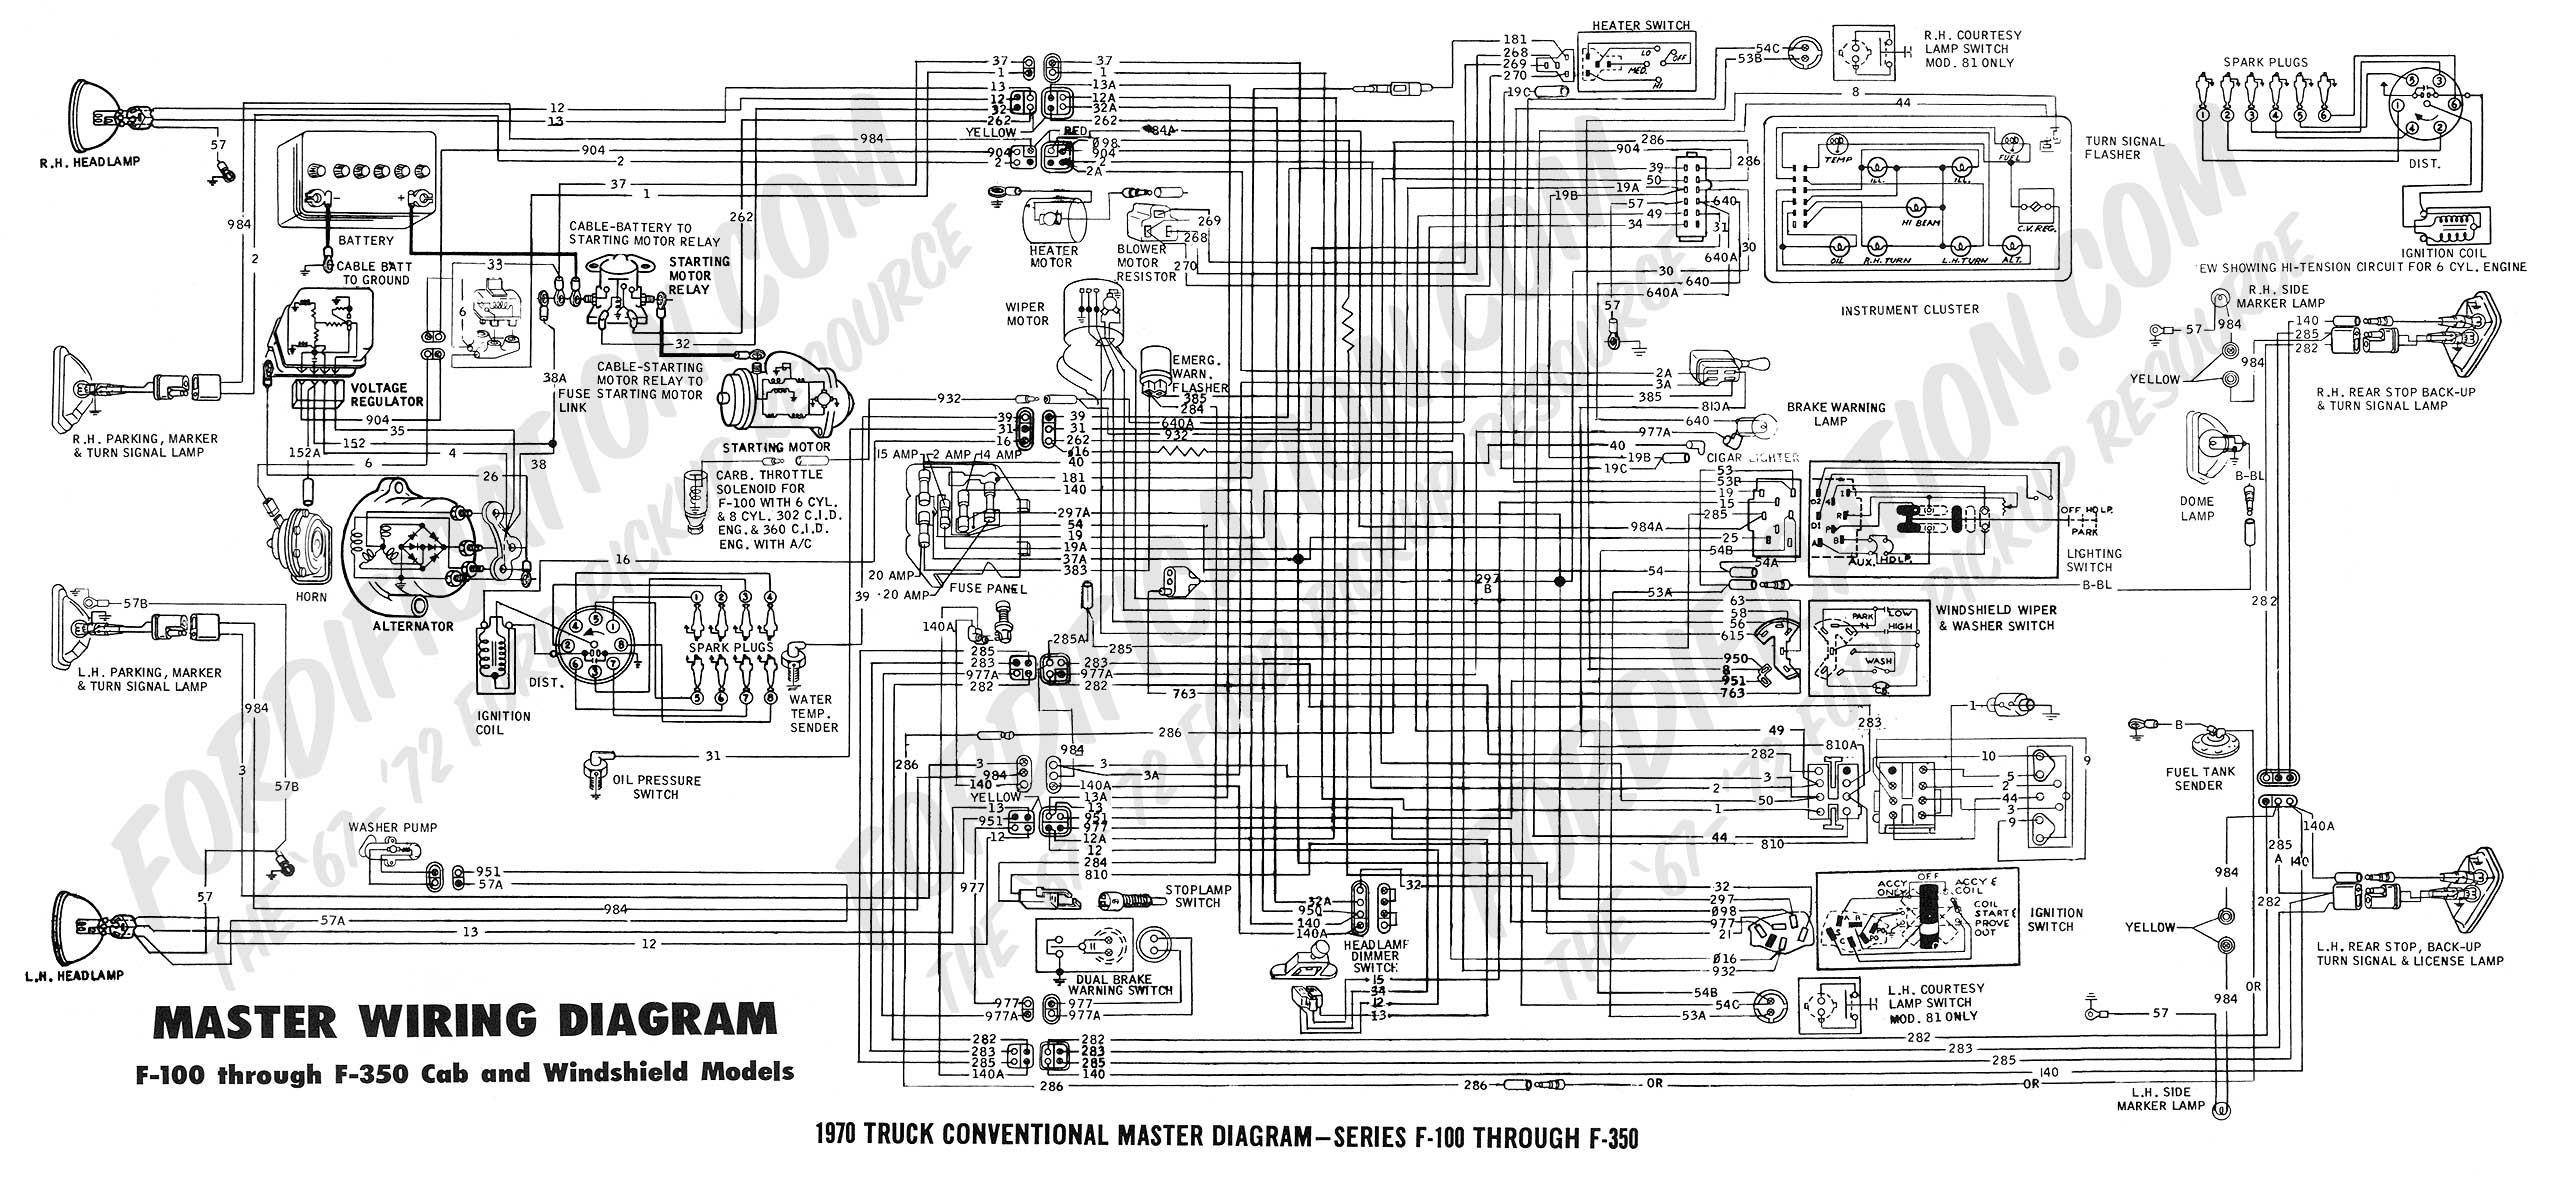 wiring diagram 70_master ford truck technical drawings and schematics section h wiring ford wiring schematics at edmiracle.co